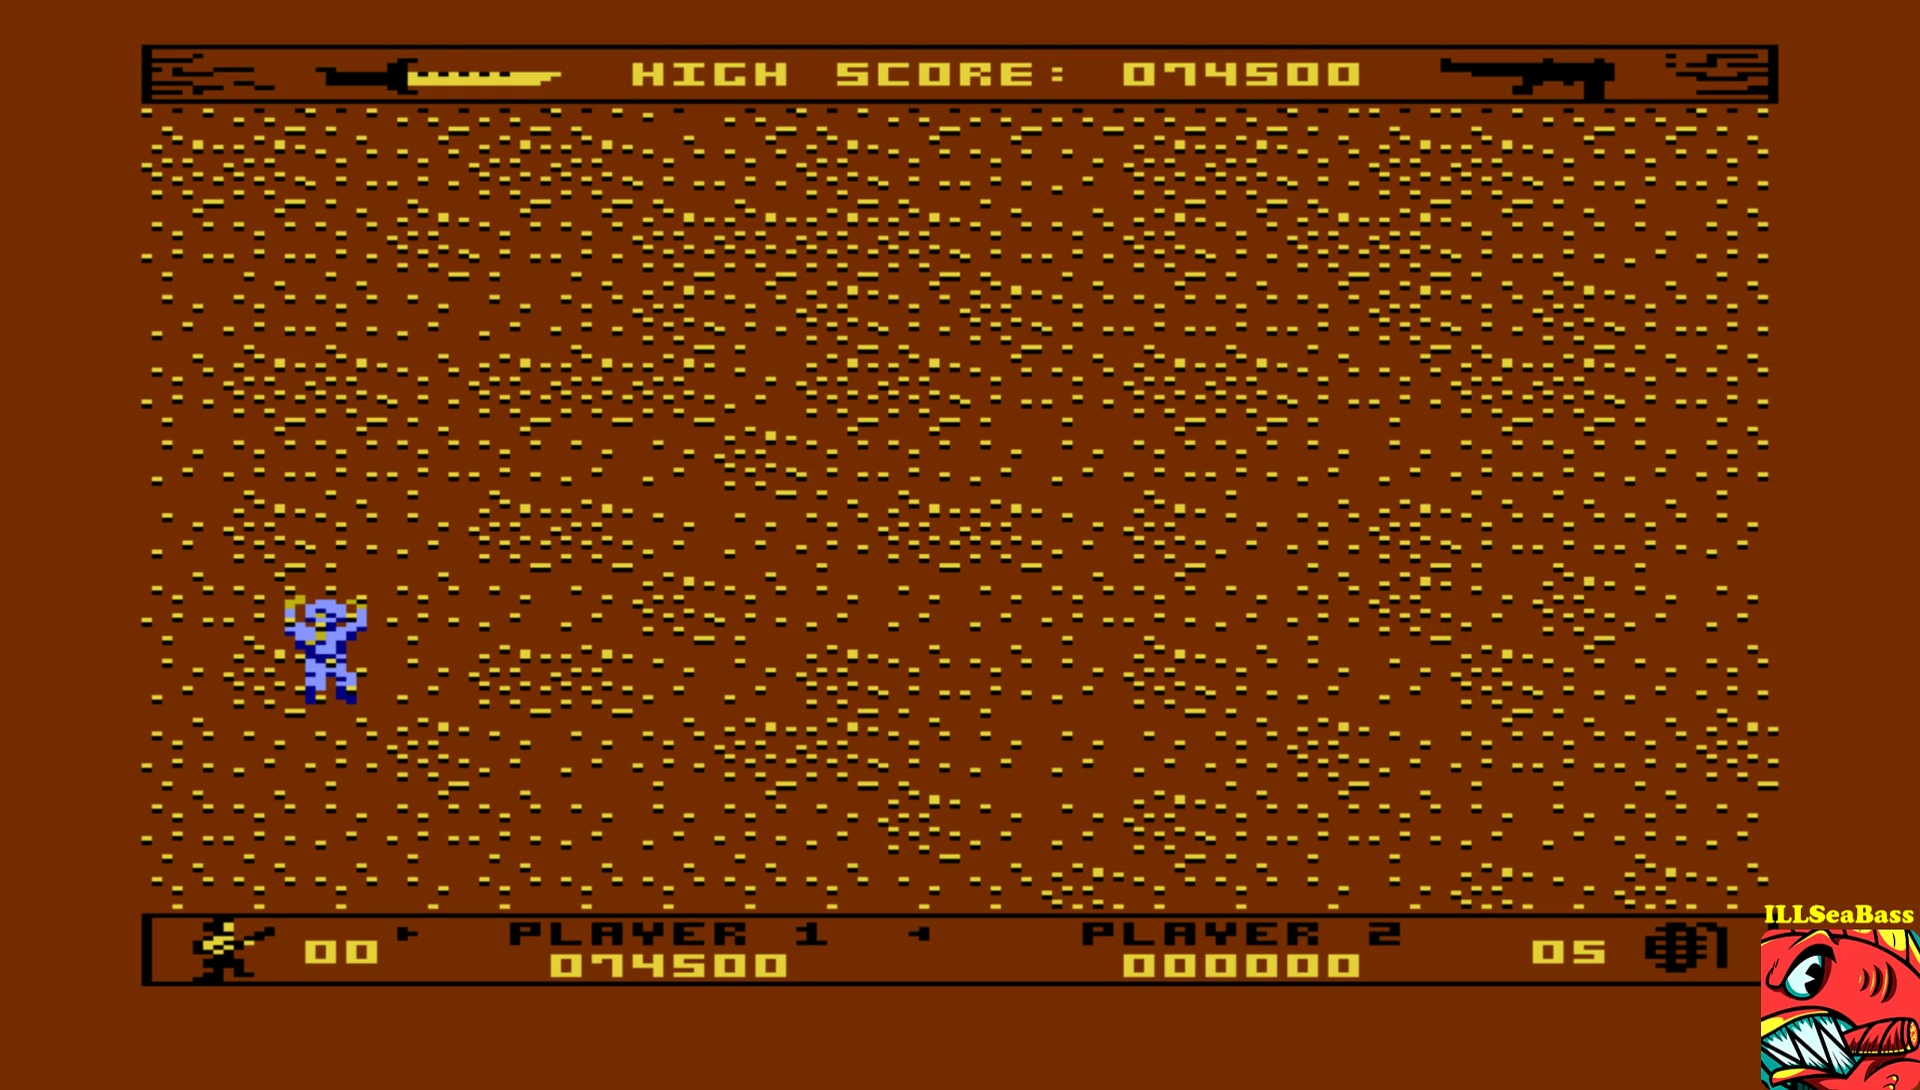 ILLSeaBass: Commando [Expert] (Atari 400/800/XL/XE Emulated) 74,500 points on 2017-07-04 02:53:50